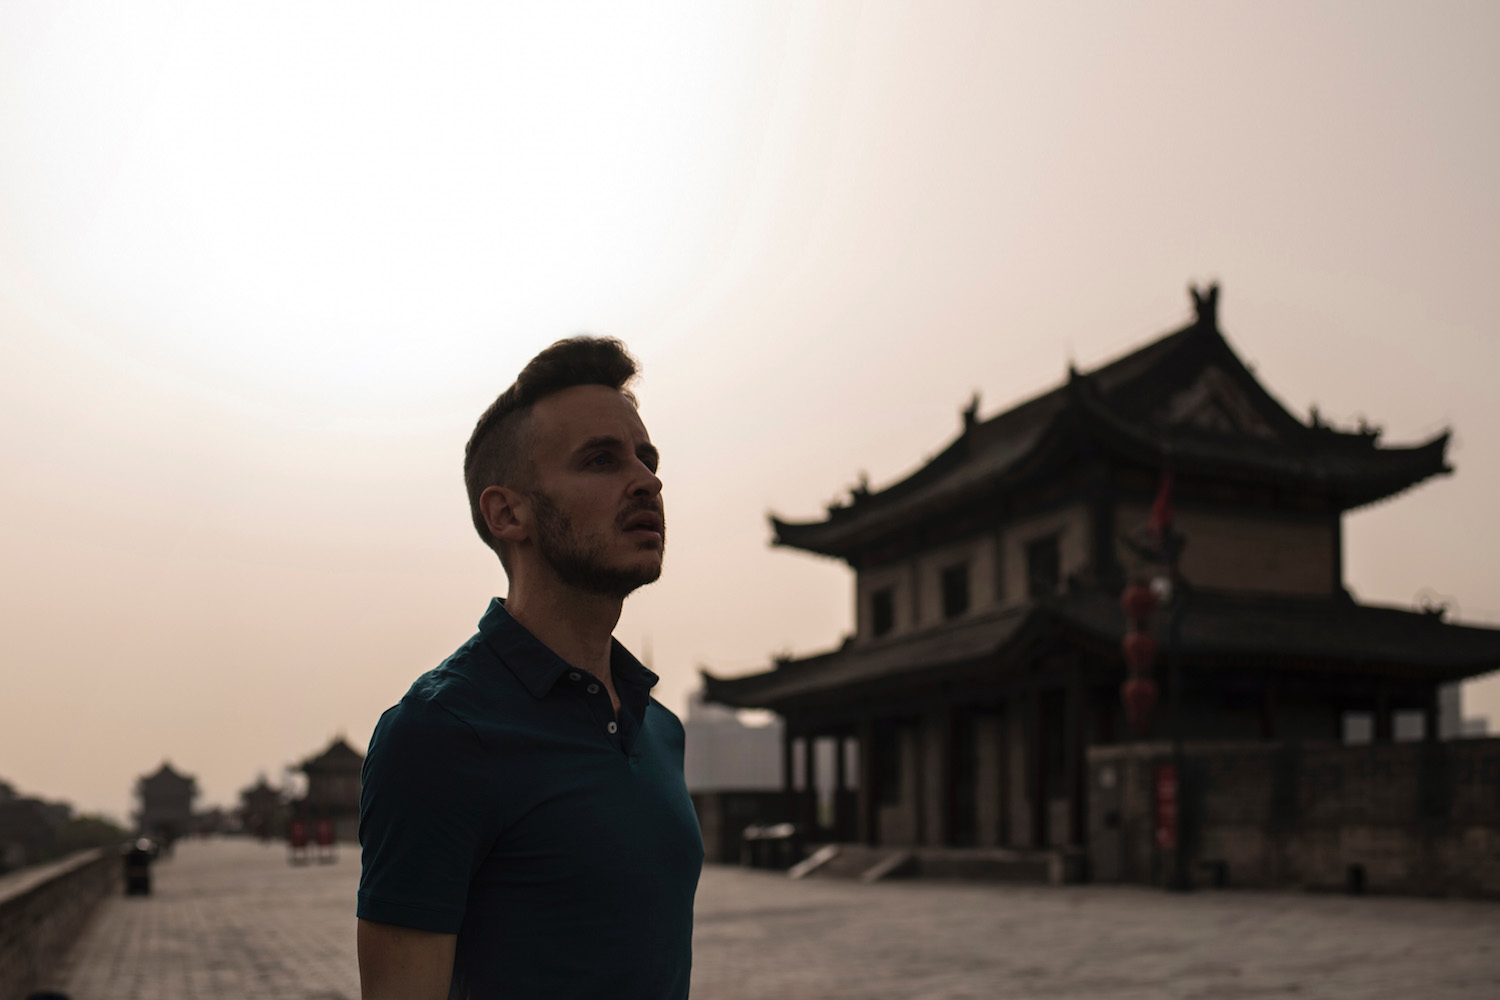 Robert Schrader in Xi'an, China